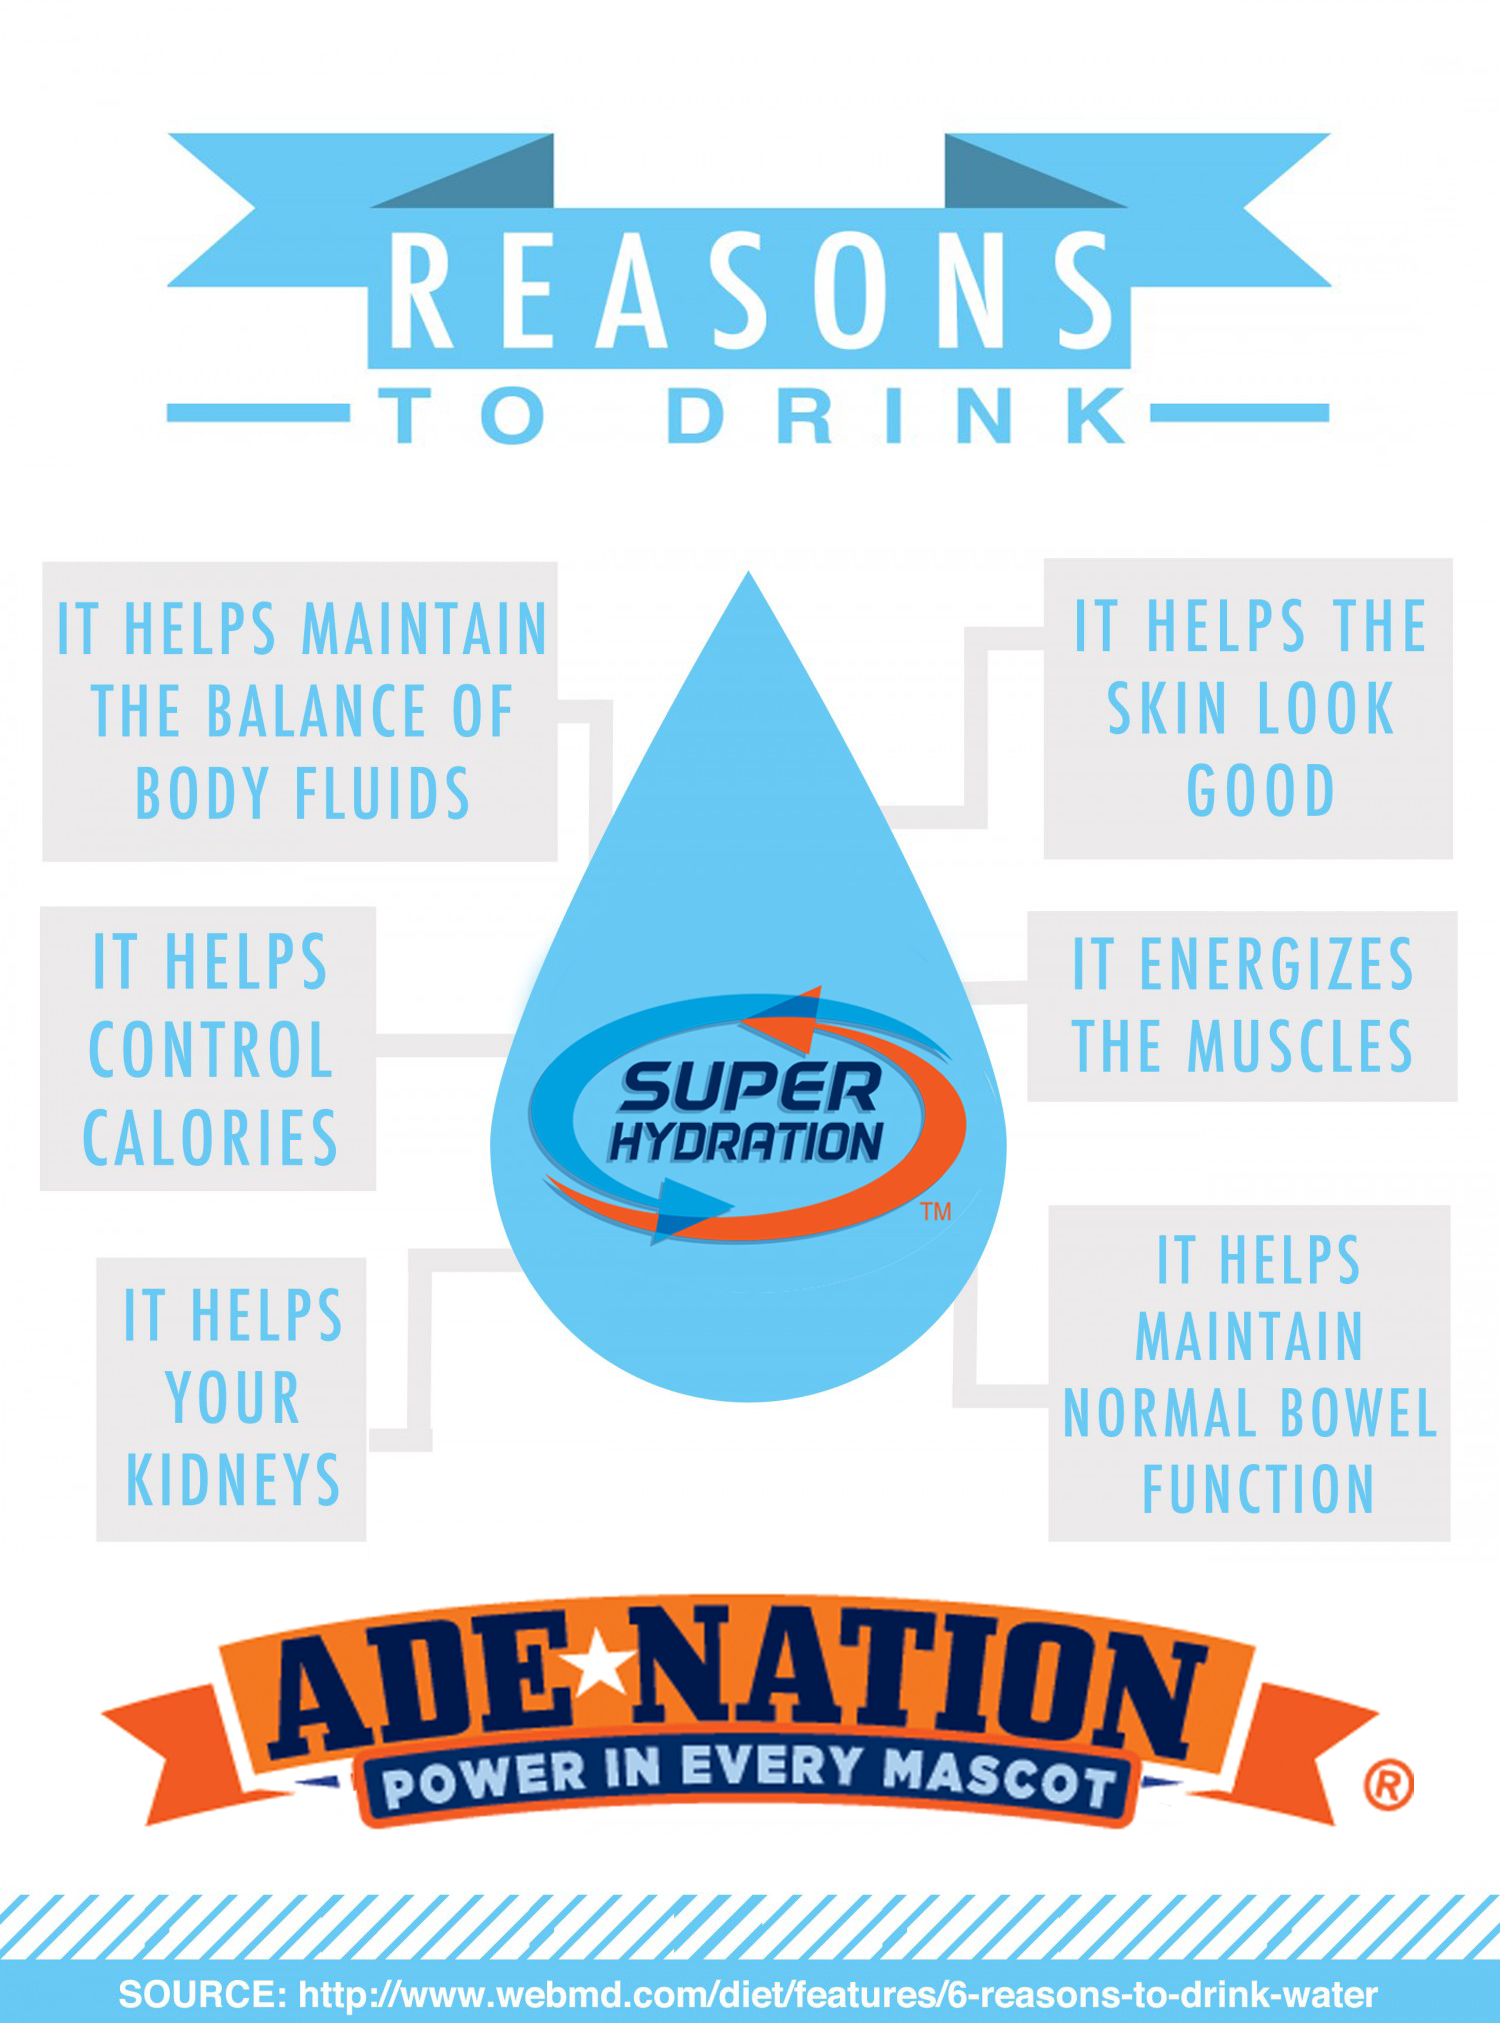 Reasons to drink Ade Nation